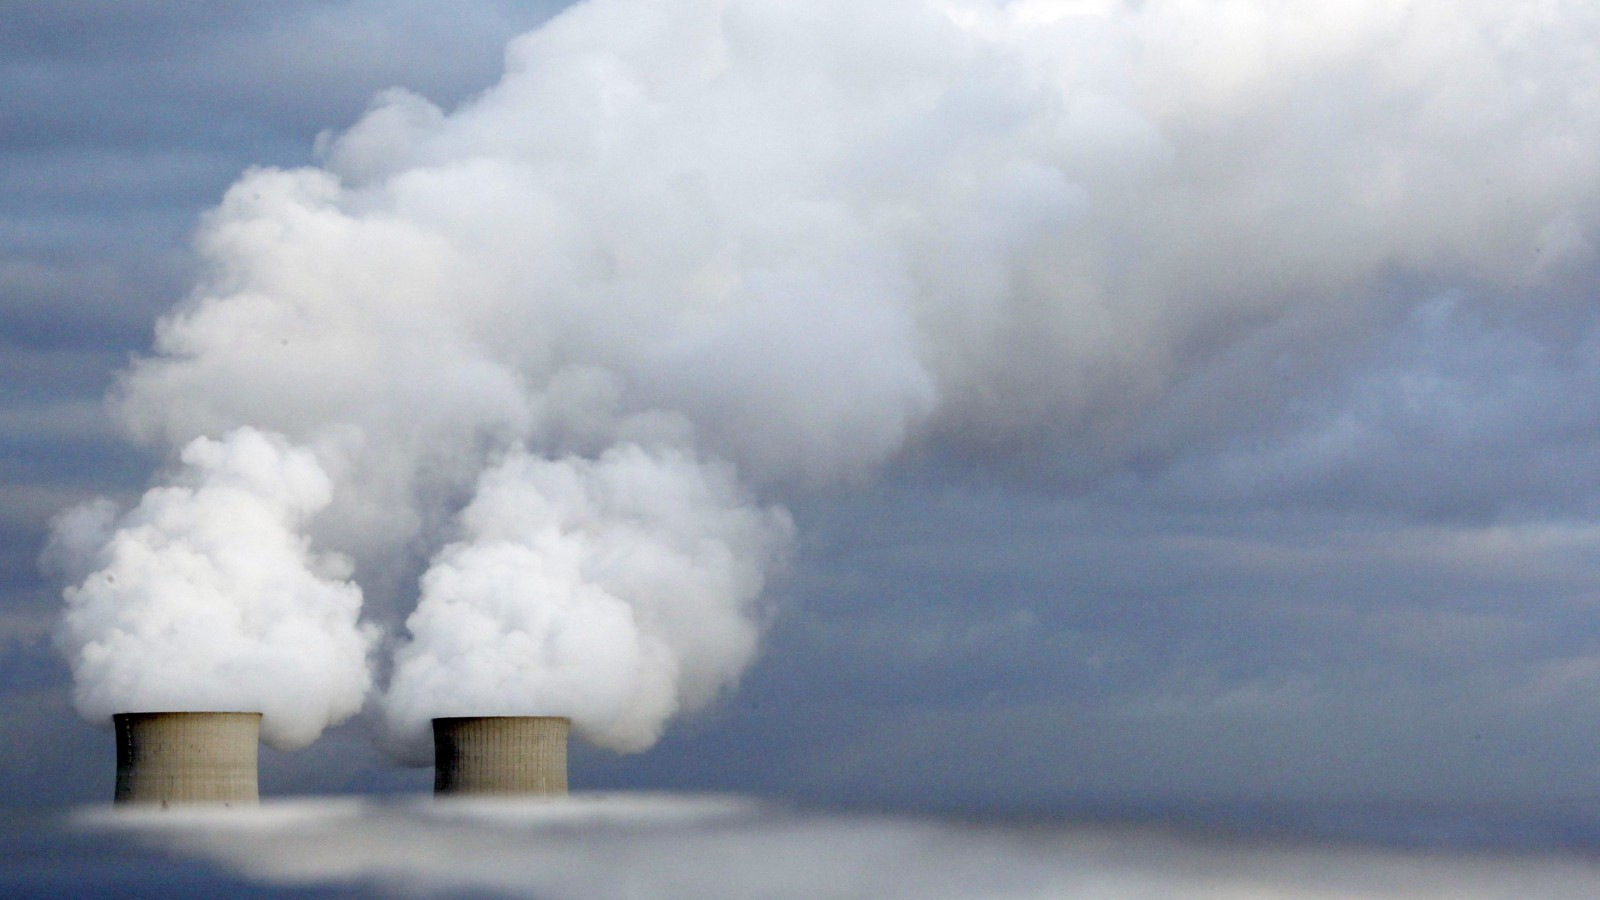 Cooling towers of France's Electricite de France (EDF) nuclear power station are reflected on a car roof in Saint Laurent near Orleans, Central France, December 18, 2012.  REUTERS/Regis Duvignau (FRANCE - Tags: ENVIRONMENT ENERGY) - RTR3BPUH